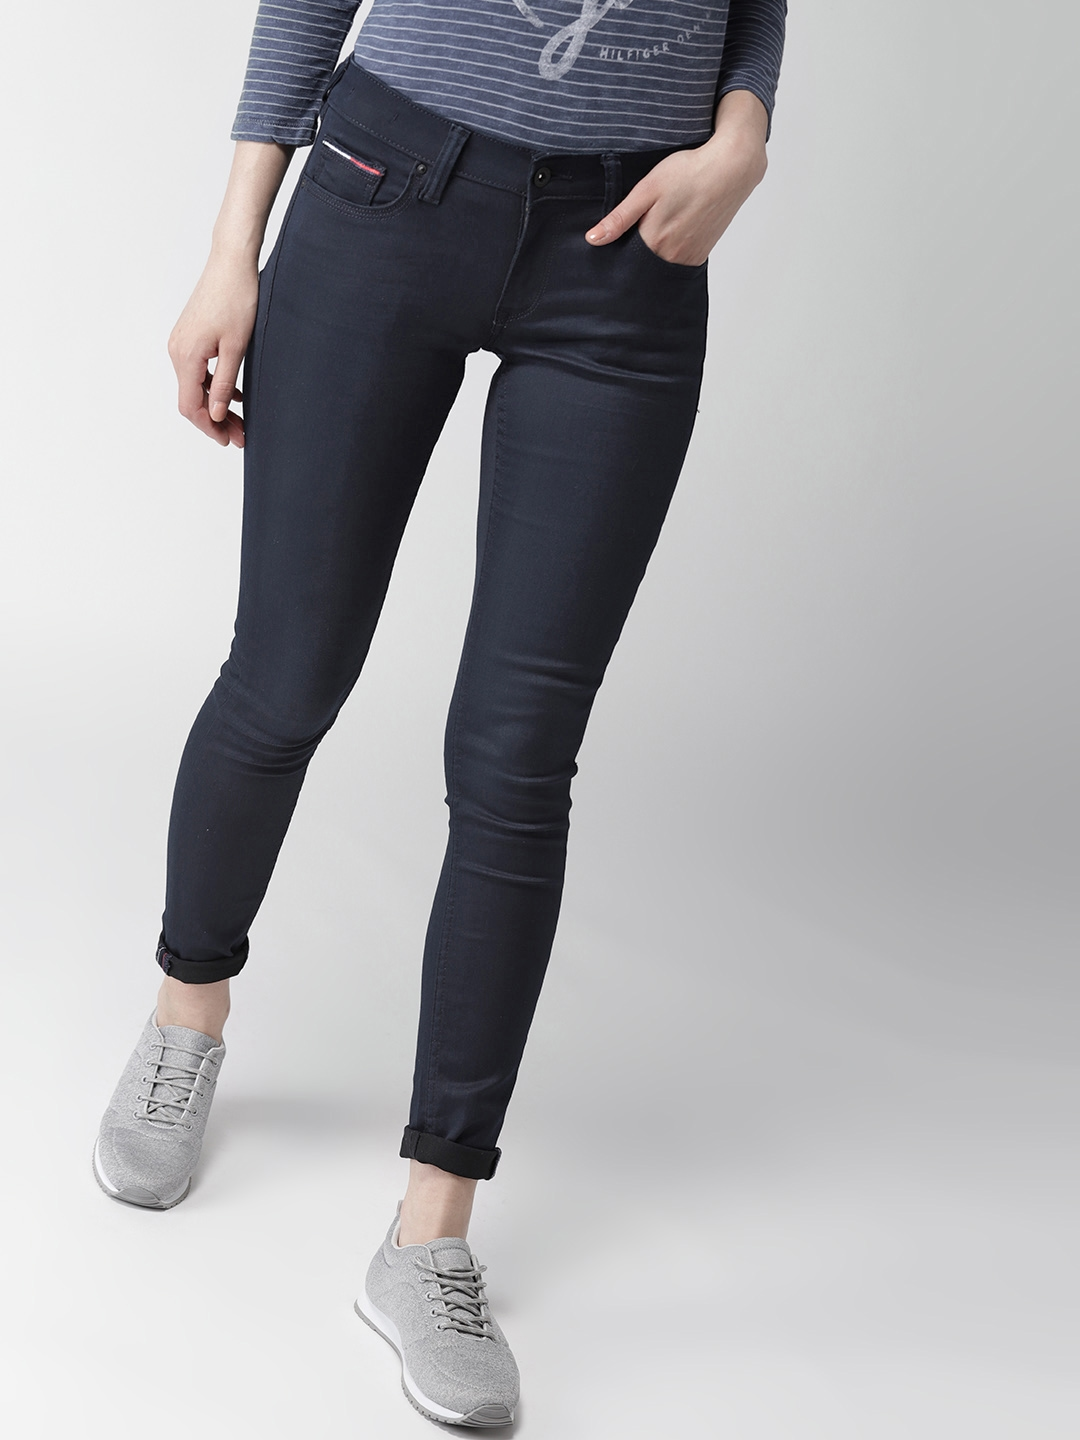 934fd3ee Tommy Hilfiger Women Navy Blue Skinny Fit Low-Rise Clean Look Stretchable  Jeans